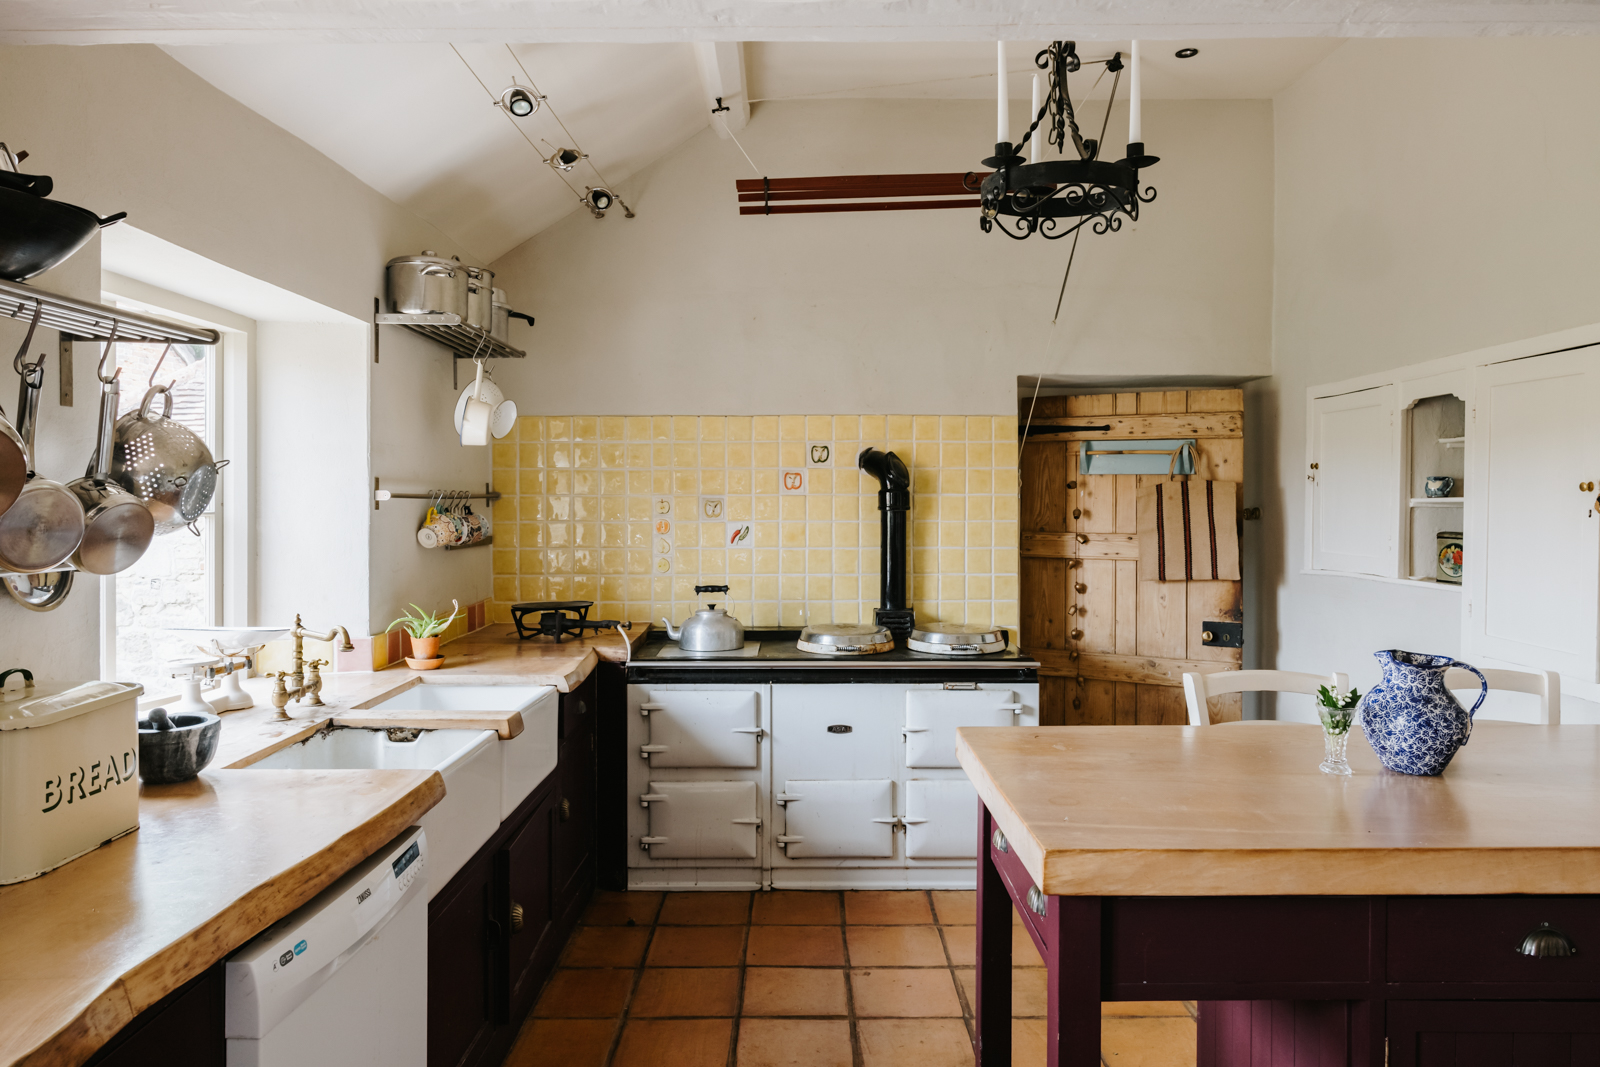 The kitchen has an old aga, wooden work tops and a serving hatch that connects to the dining room